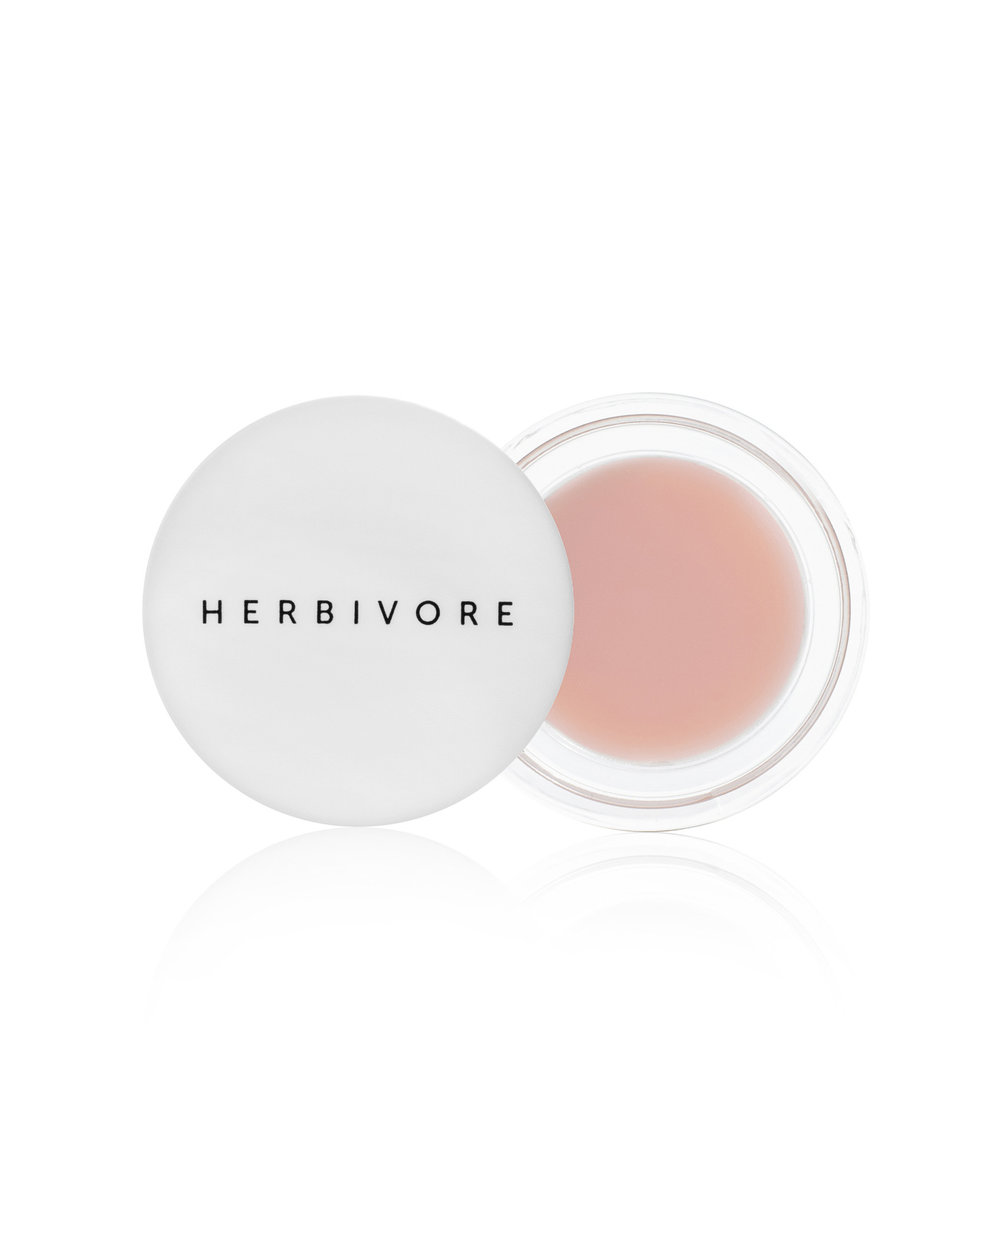 Herbivore Botanicals Lip Conditioner, $22